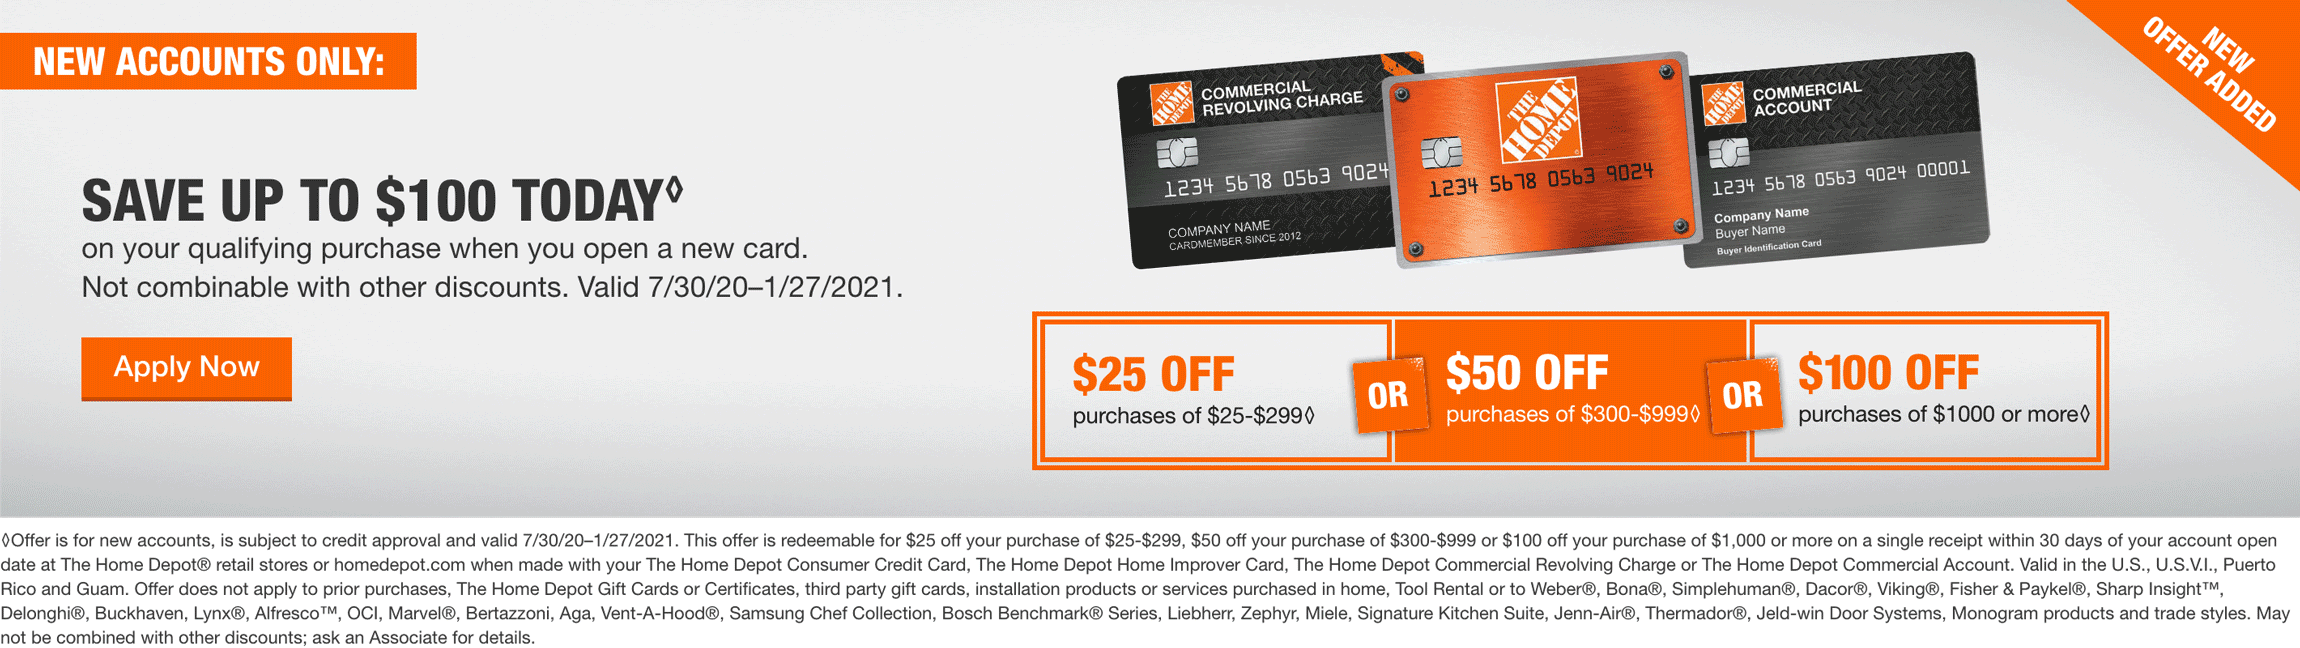 SAVE UP TO $100 TODAY* on your qualifying purchase when you open a new card. Not combinable with other discounts. Valid 7/30/20–1/27/2021.